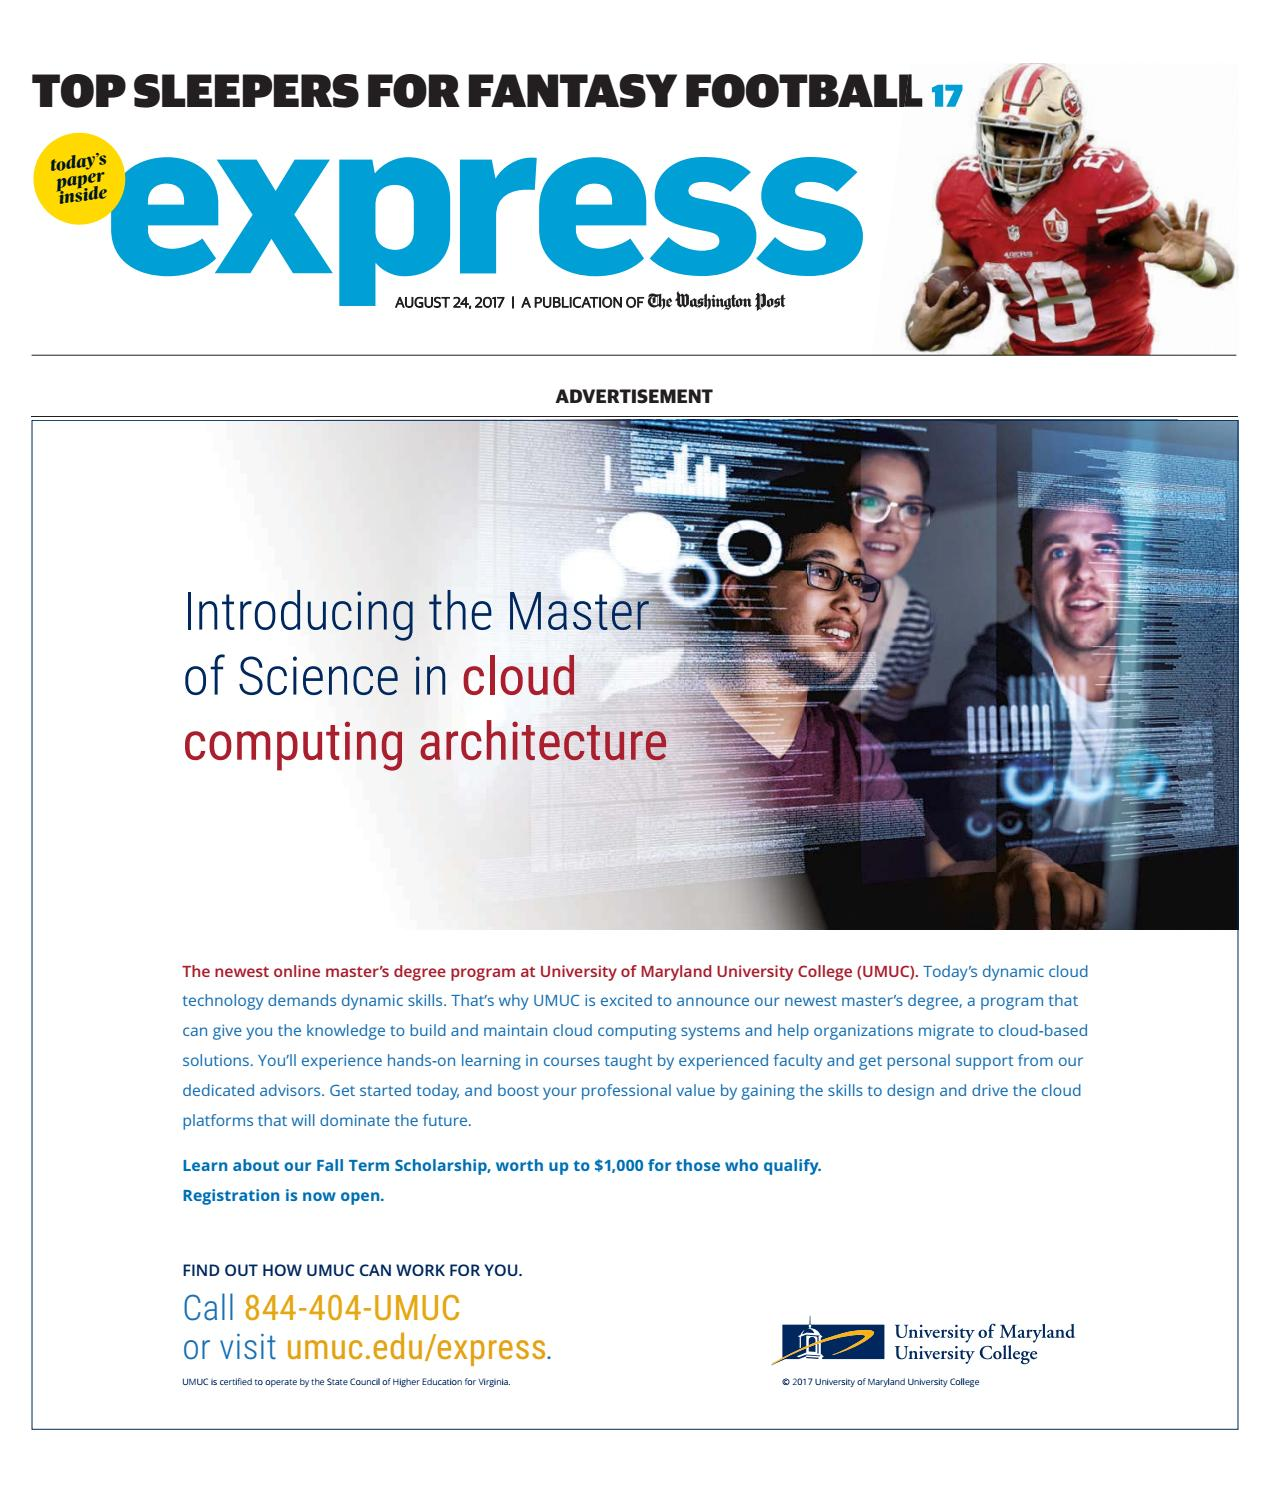 EXPRESS_08242017 by Express - issuu